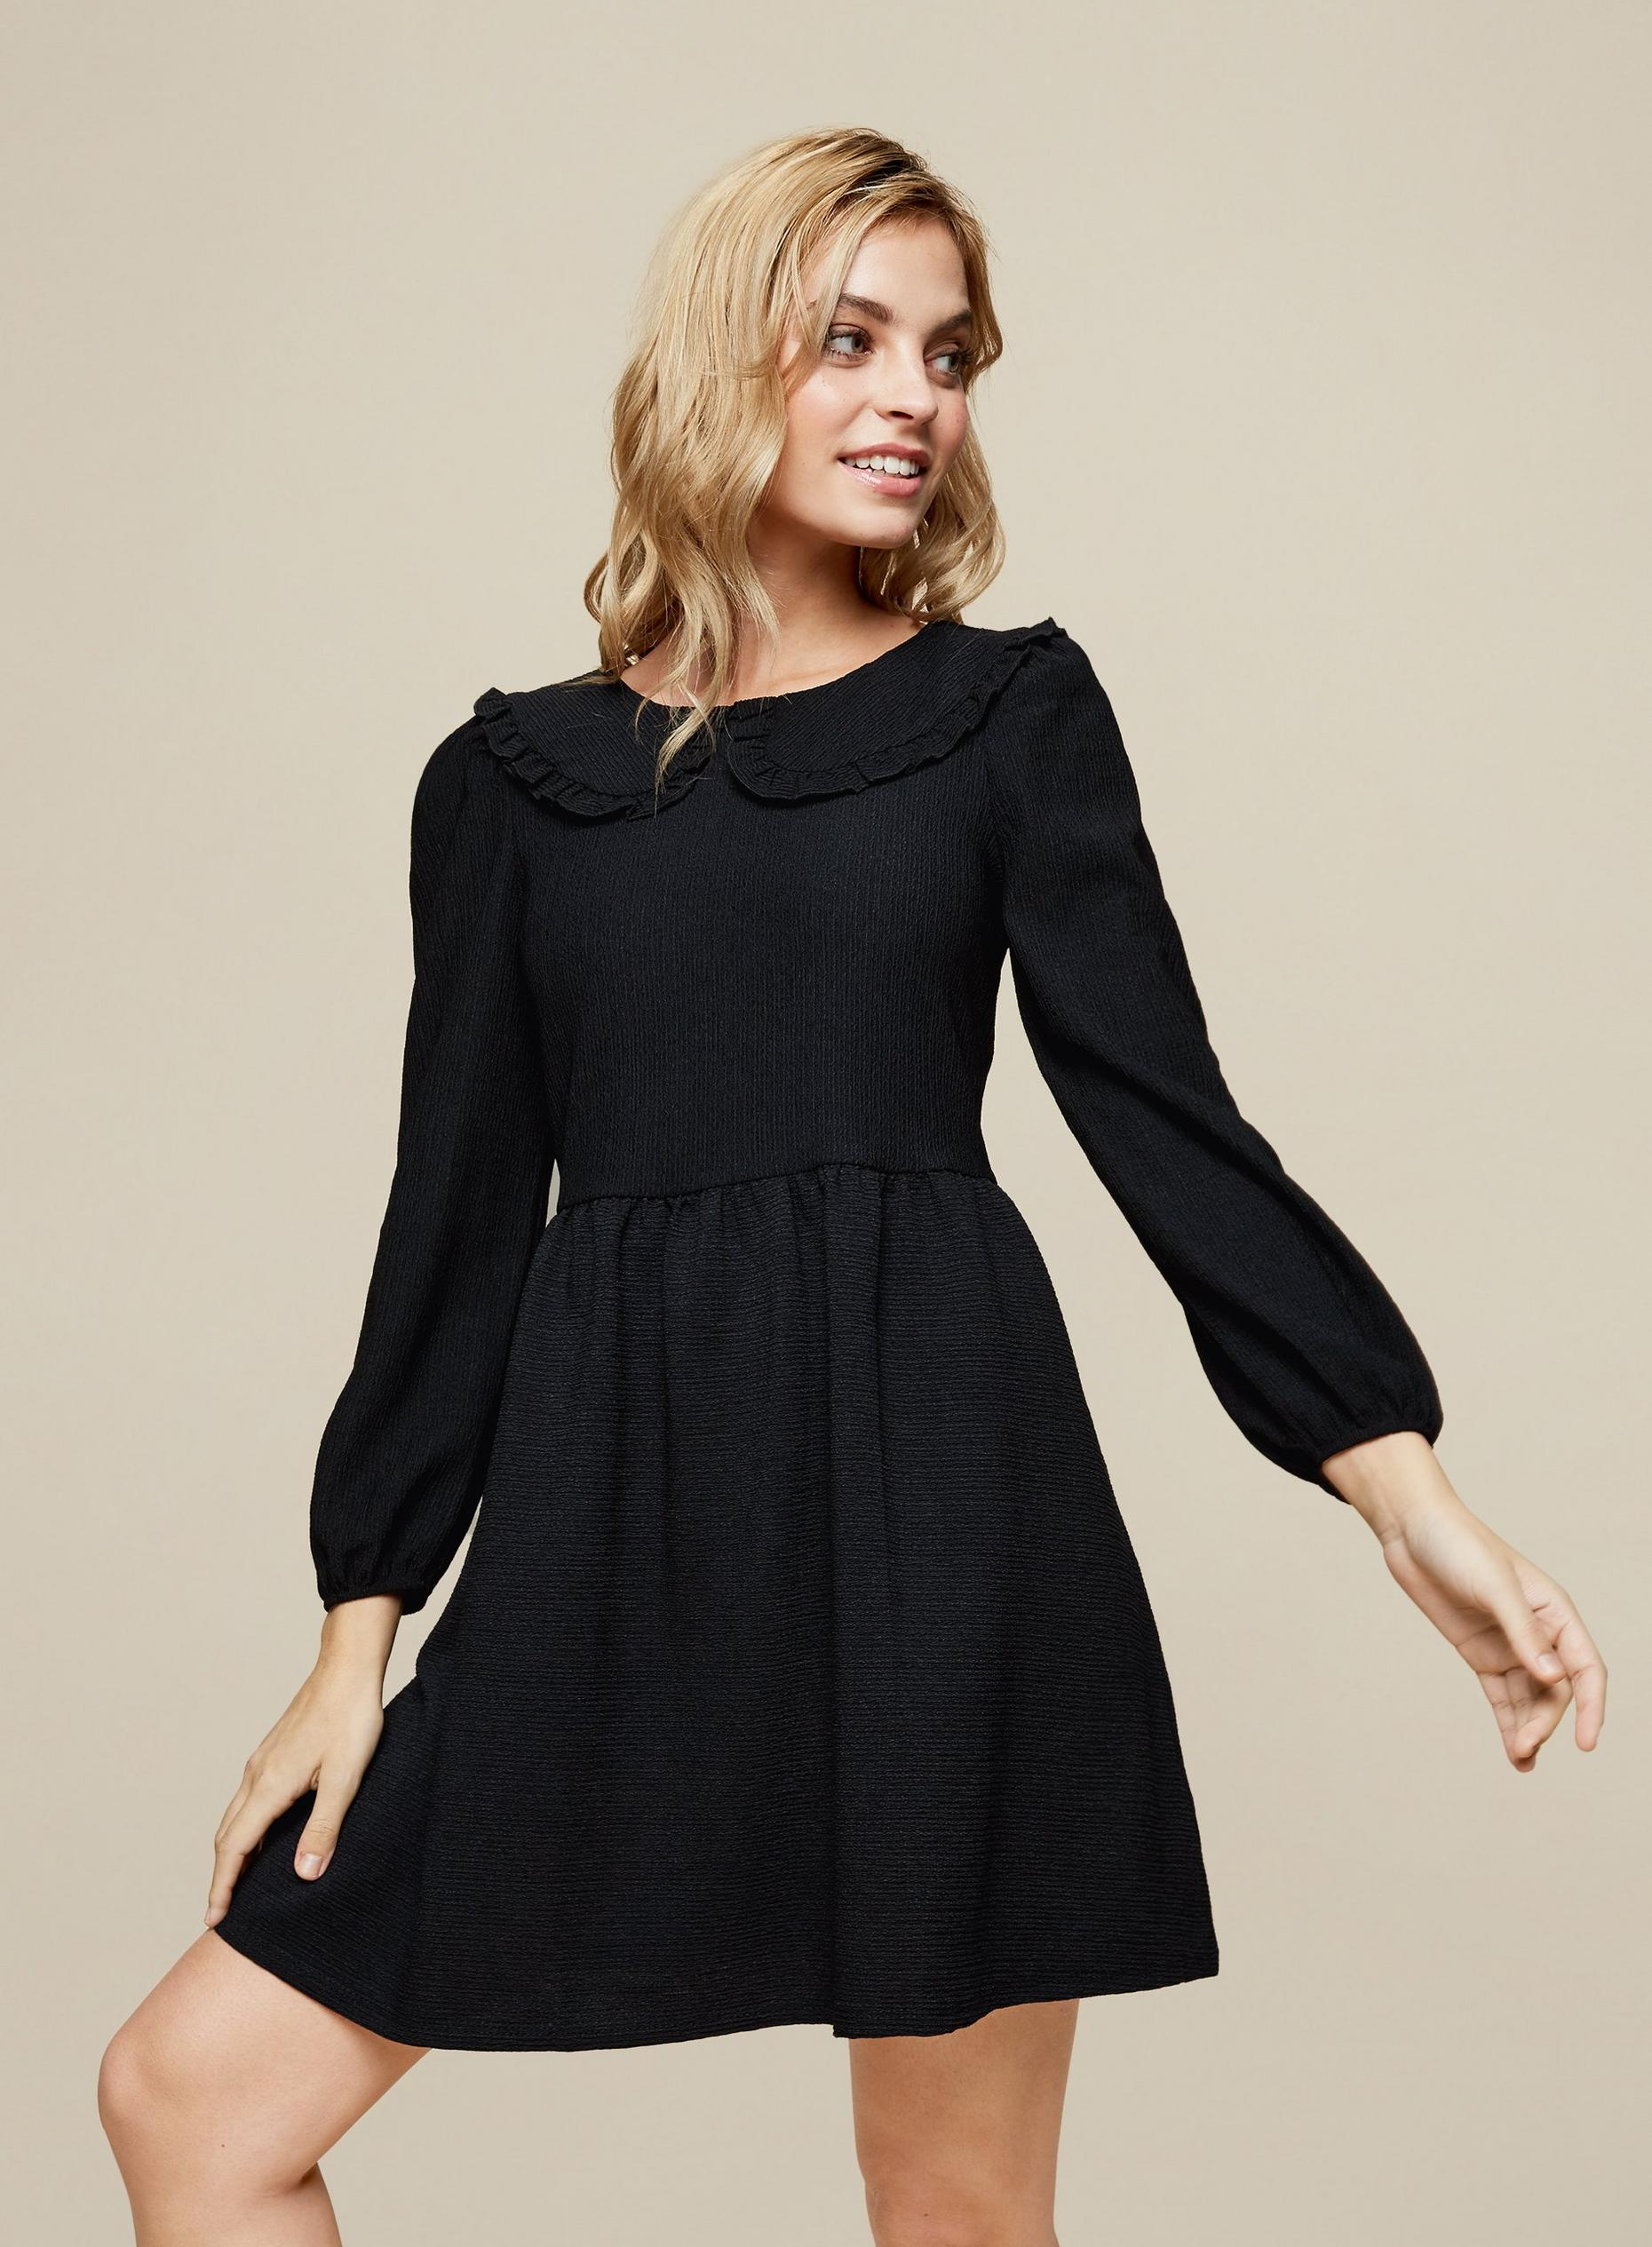 DP Petite Black Fit and Flare Dress